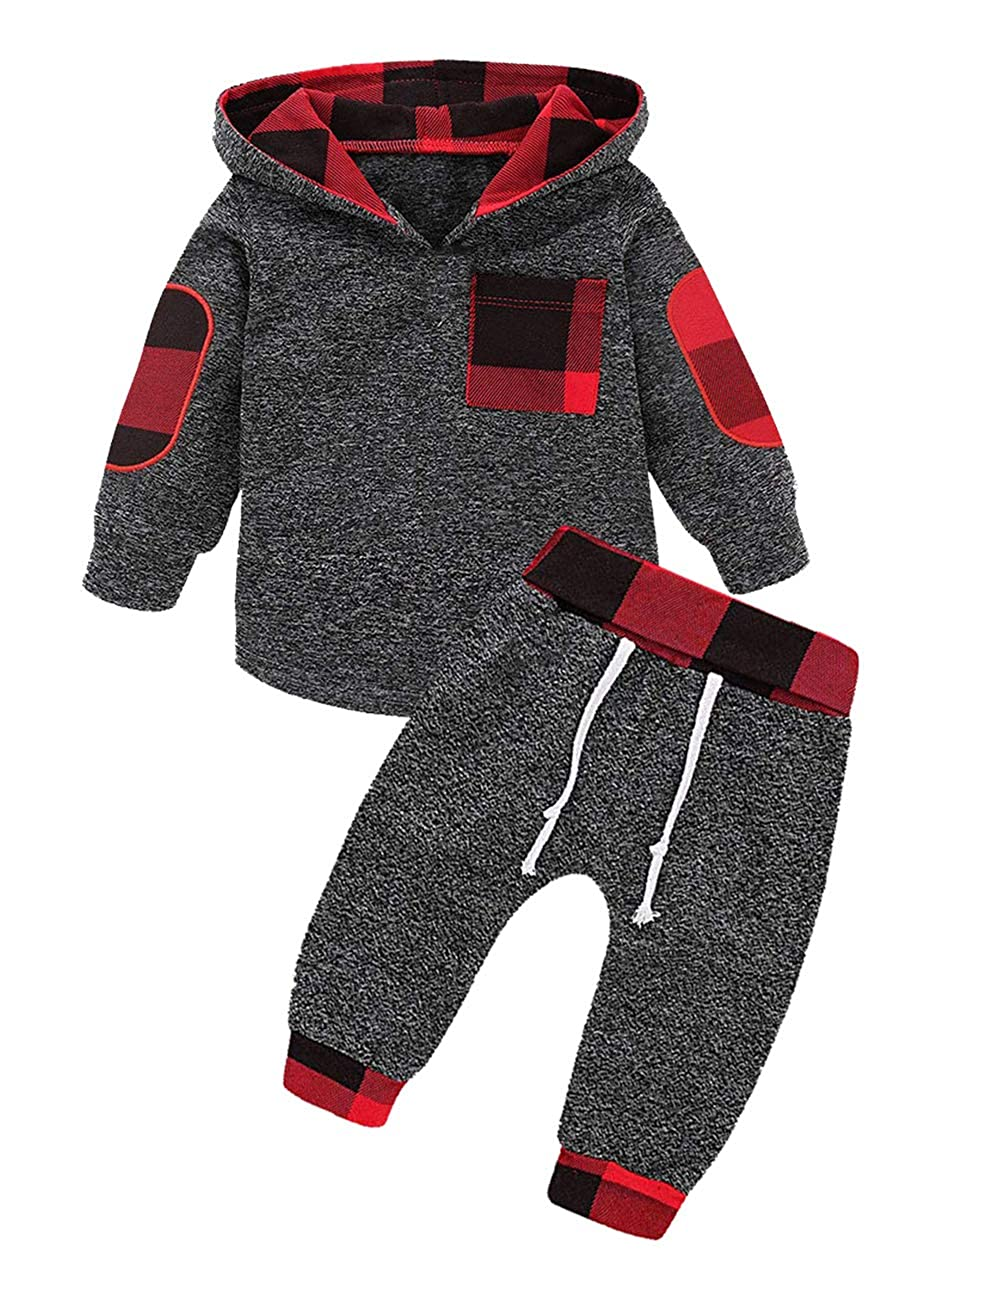 a5199169f0ce9 Amazon.com: Toddler Infant Baby Boys Girls Stylish Plaid Floral Pocket  Hooded Sweatshirt Coat, Kids Jackets Tops +Pants Outfit Sets: Clothing